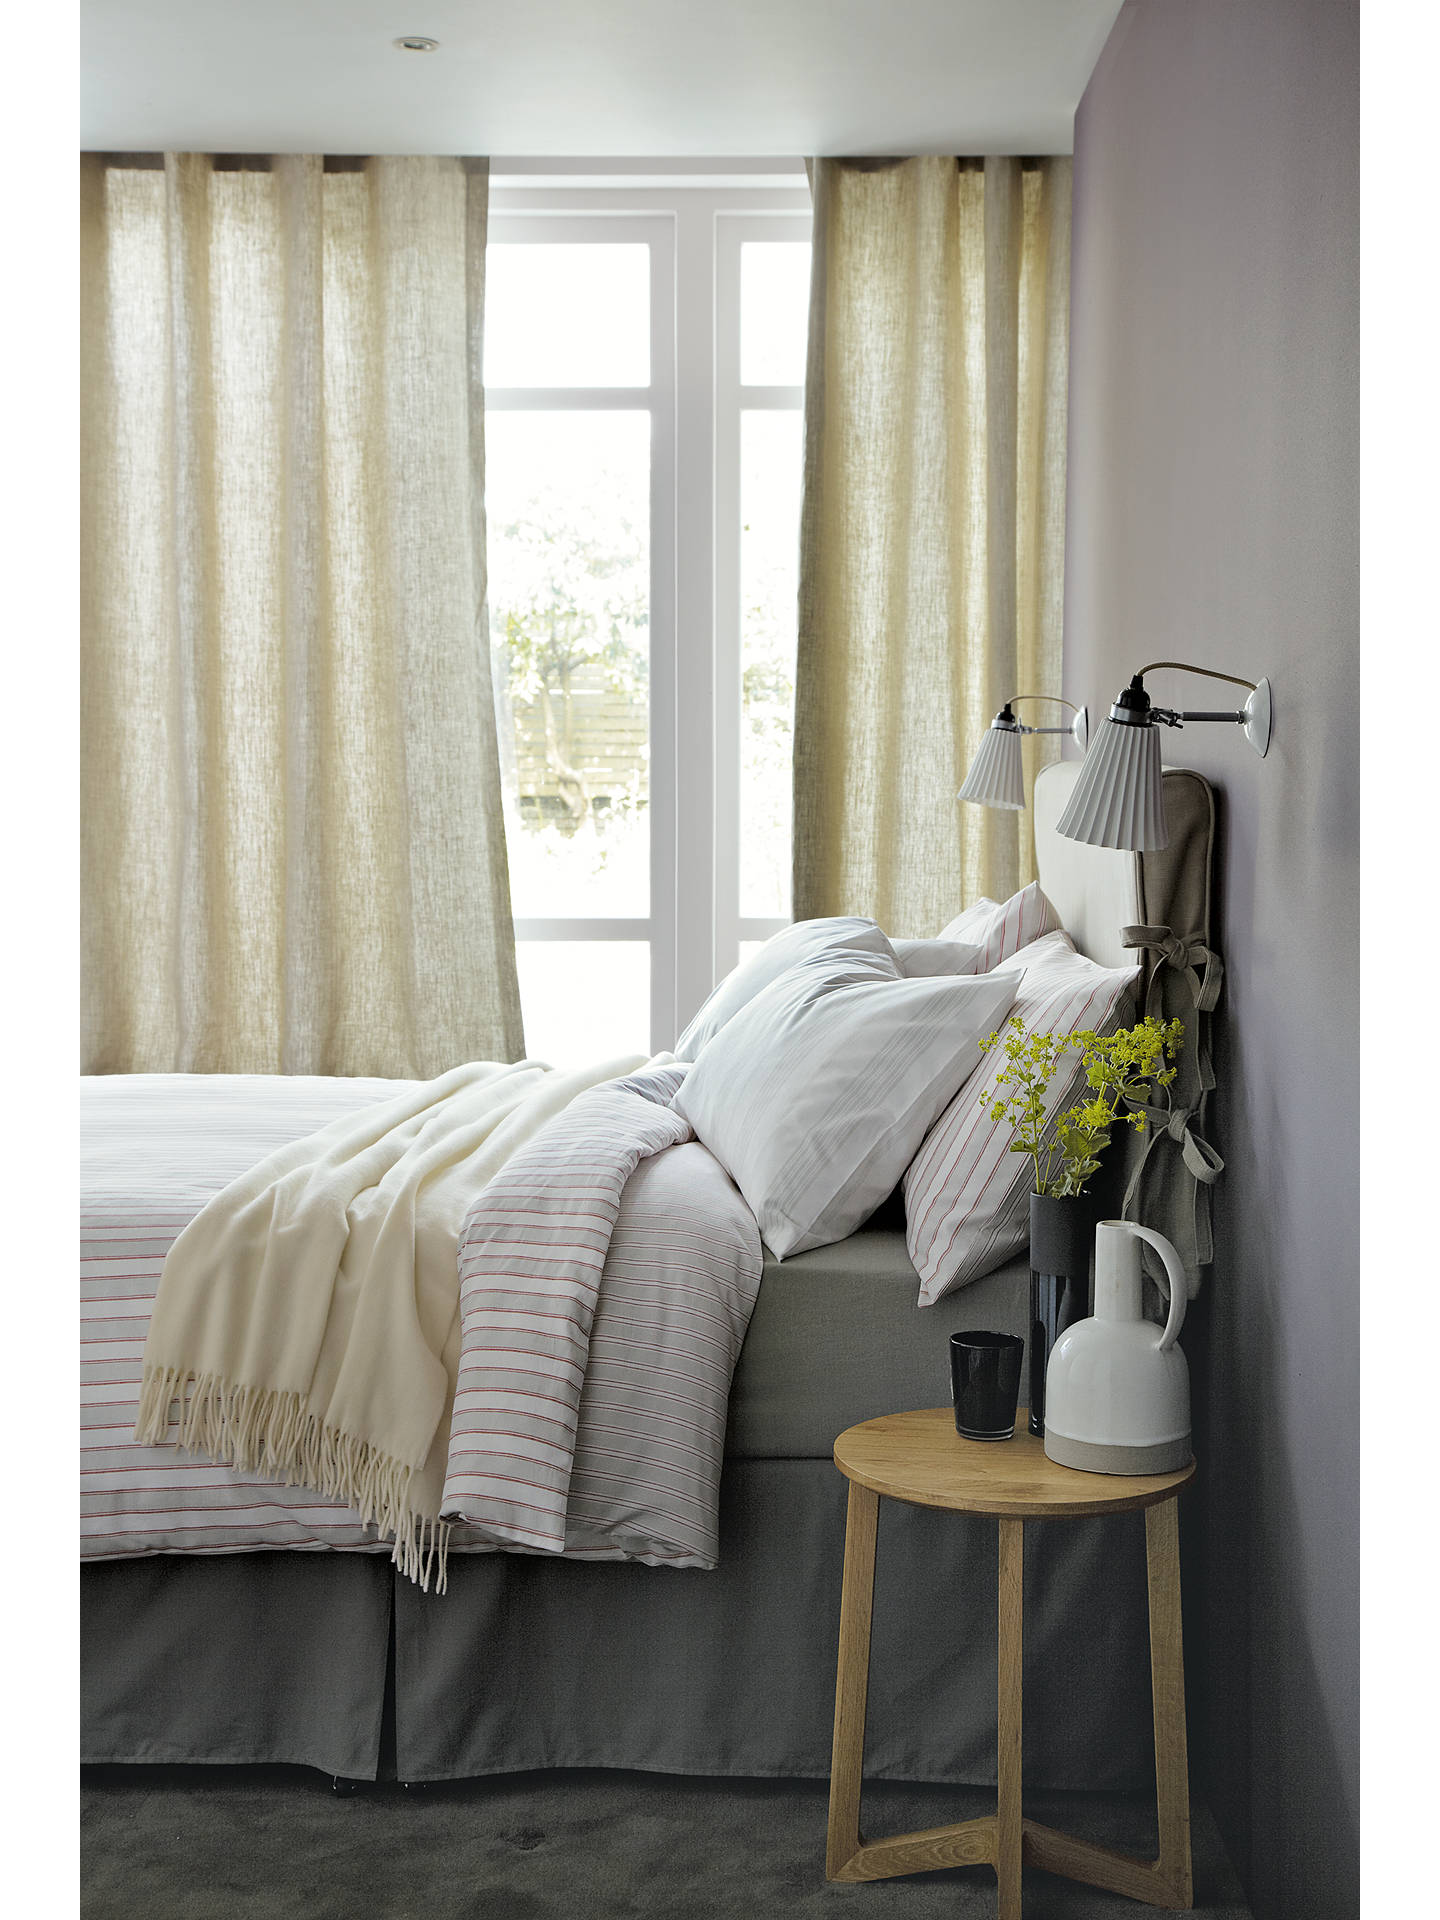 BuyOriginal BTC Hector Pleat Wall Light Online at johnlewis.com